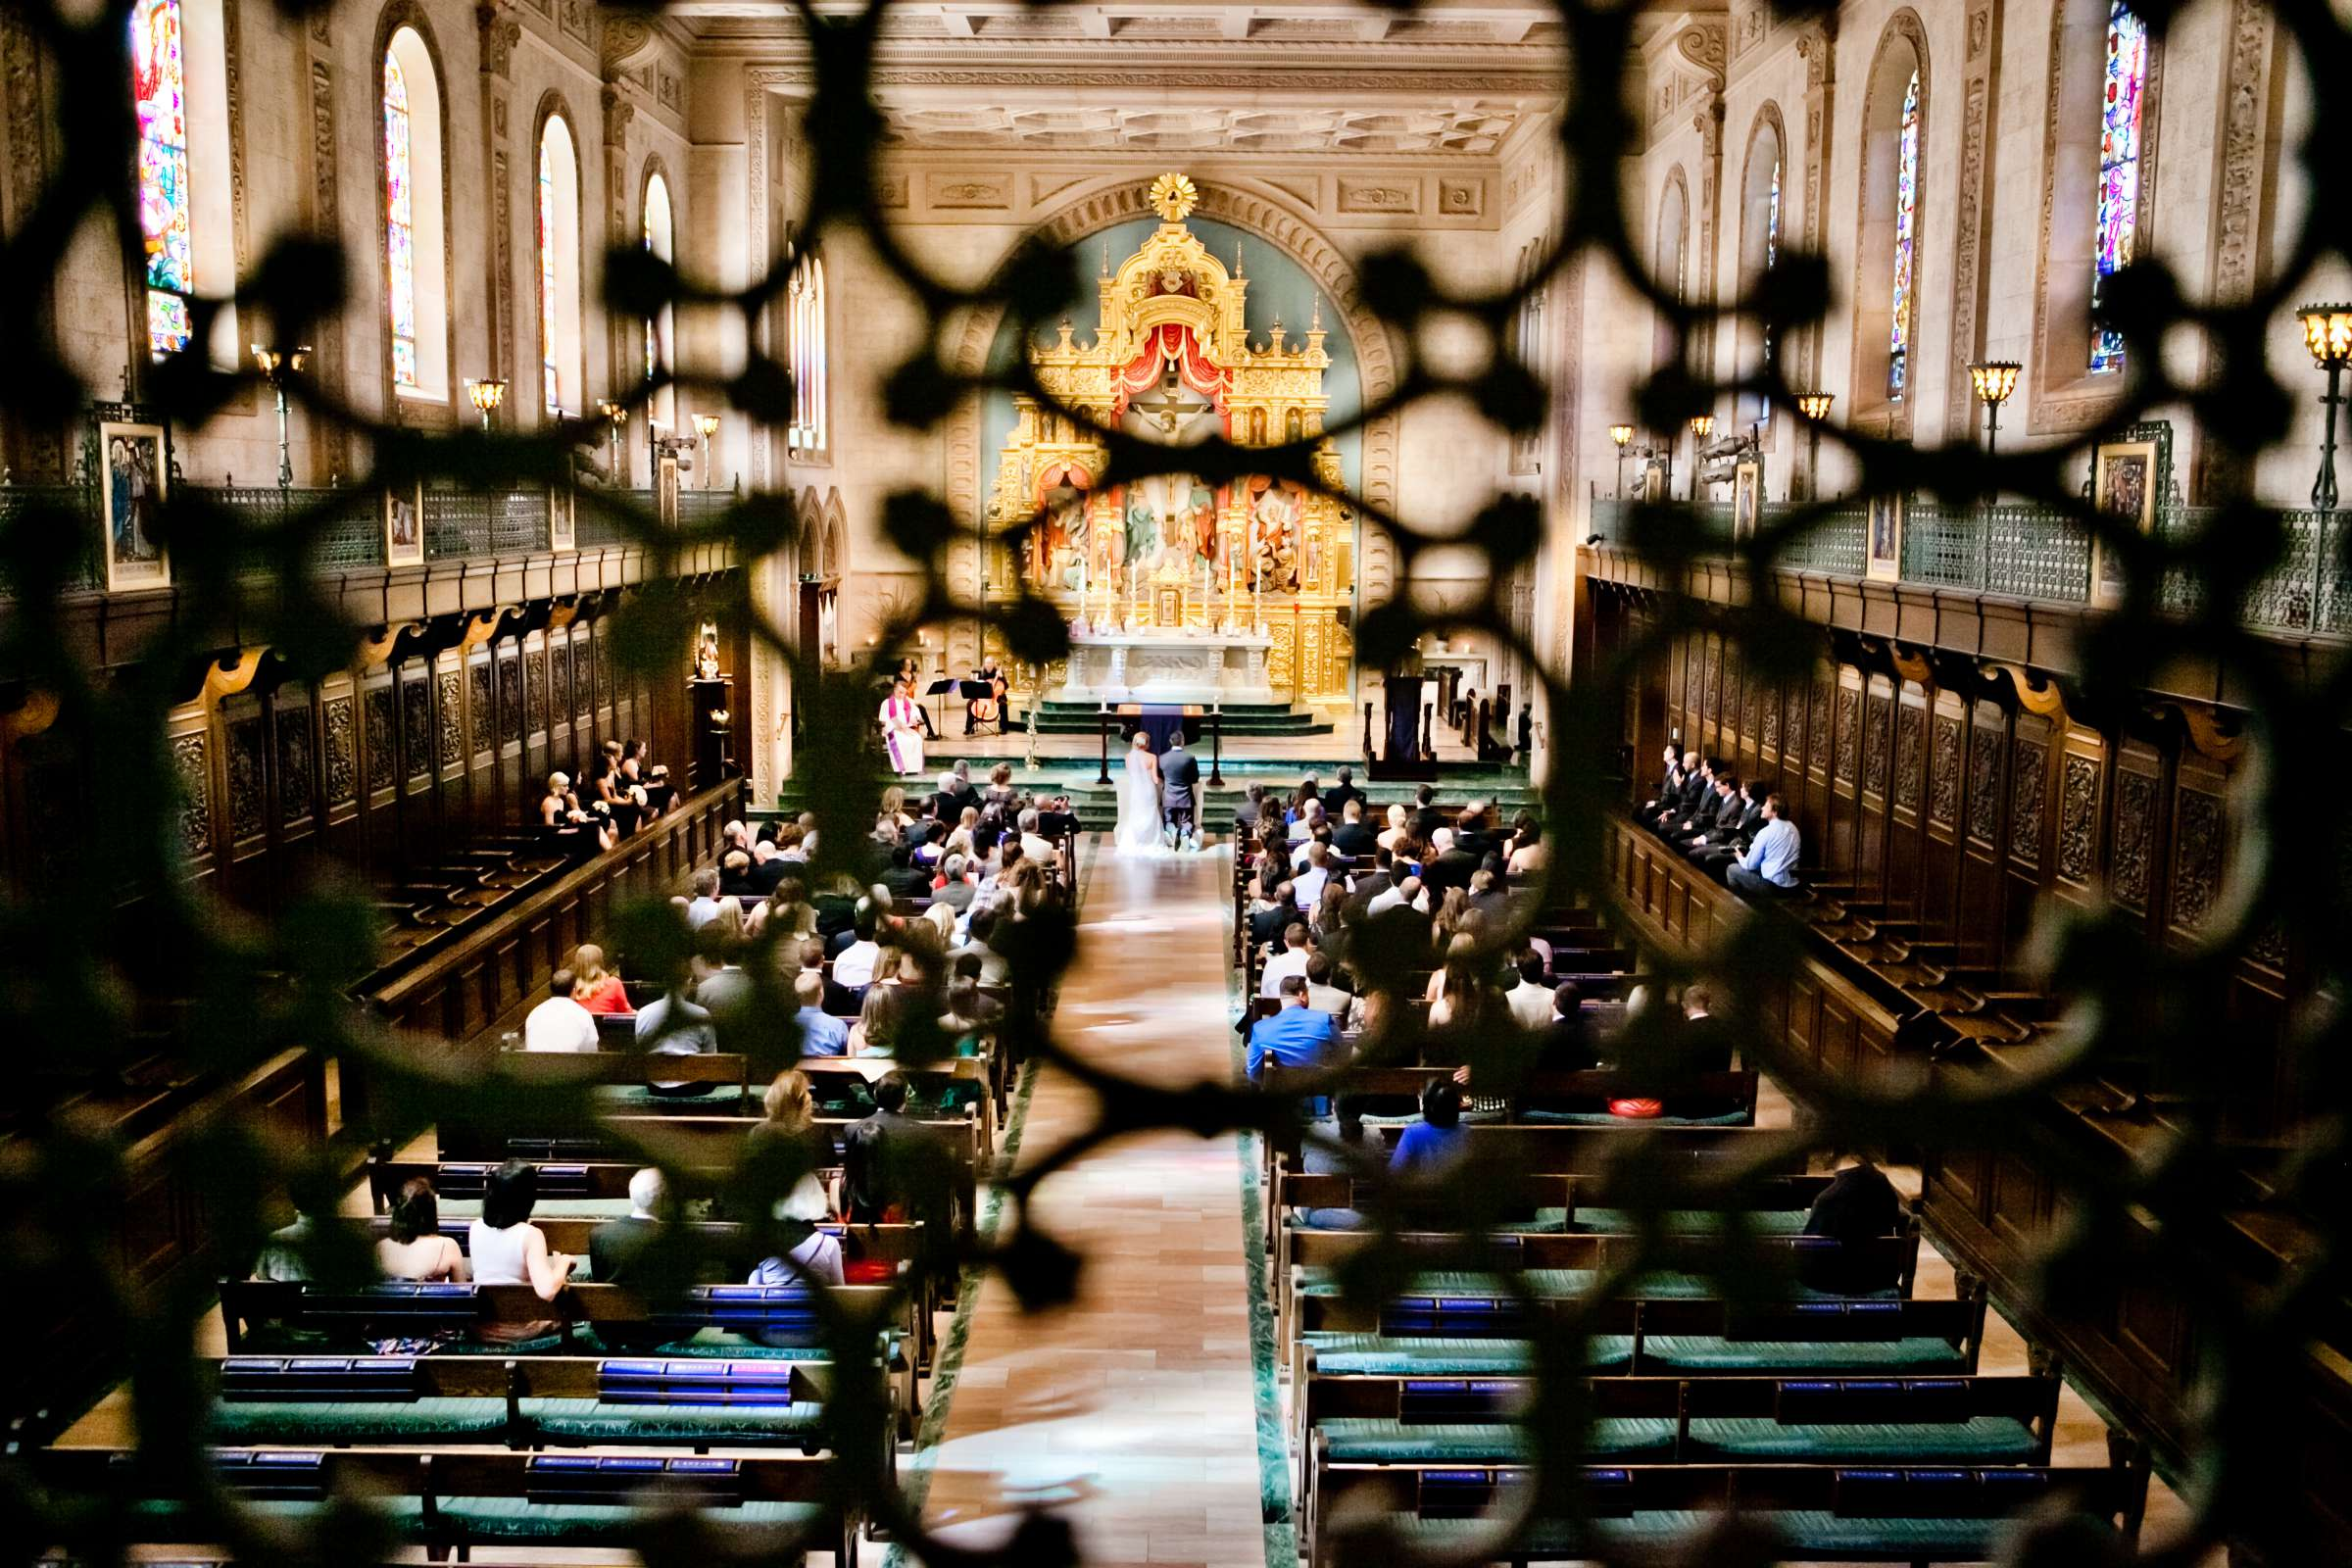 Church at Ultimate Skybox Wedding, Chelsea and Frank Wedding Photo #11 by True Photography